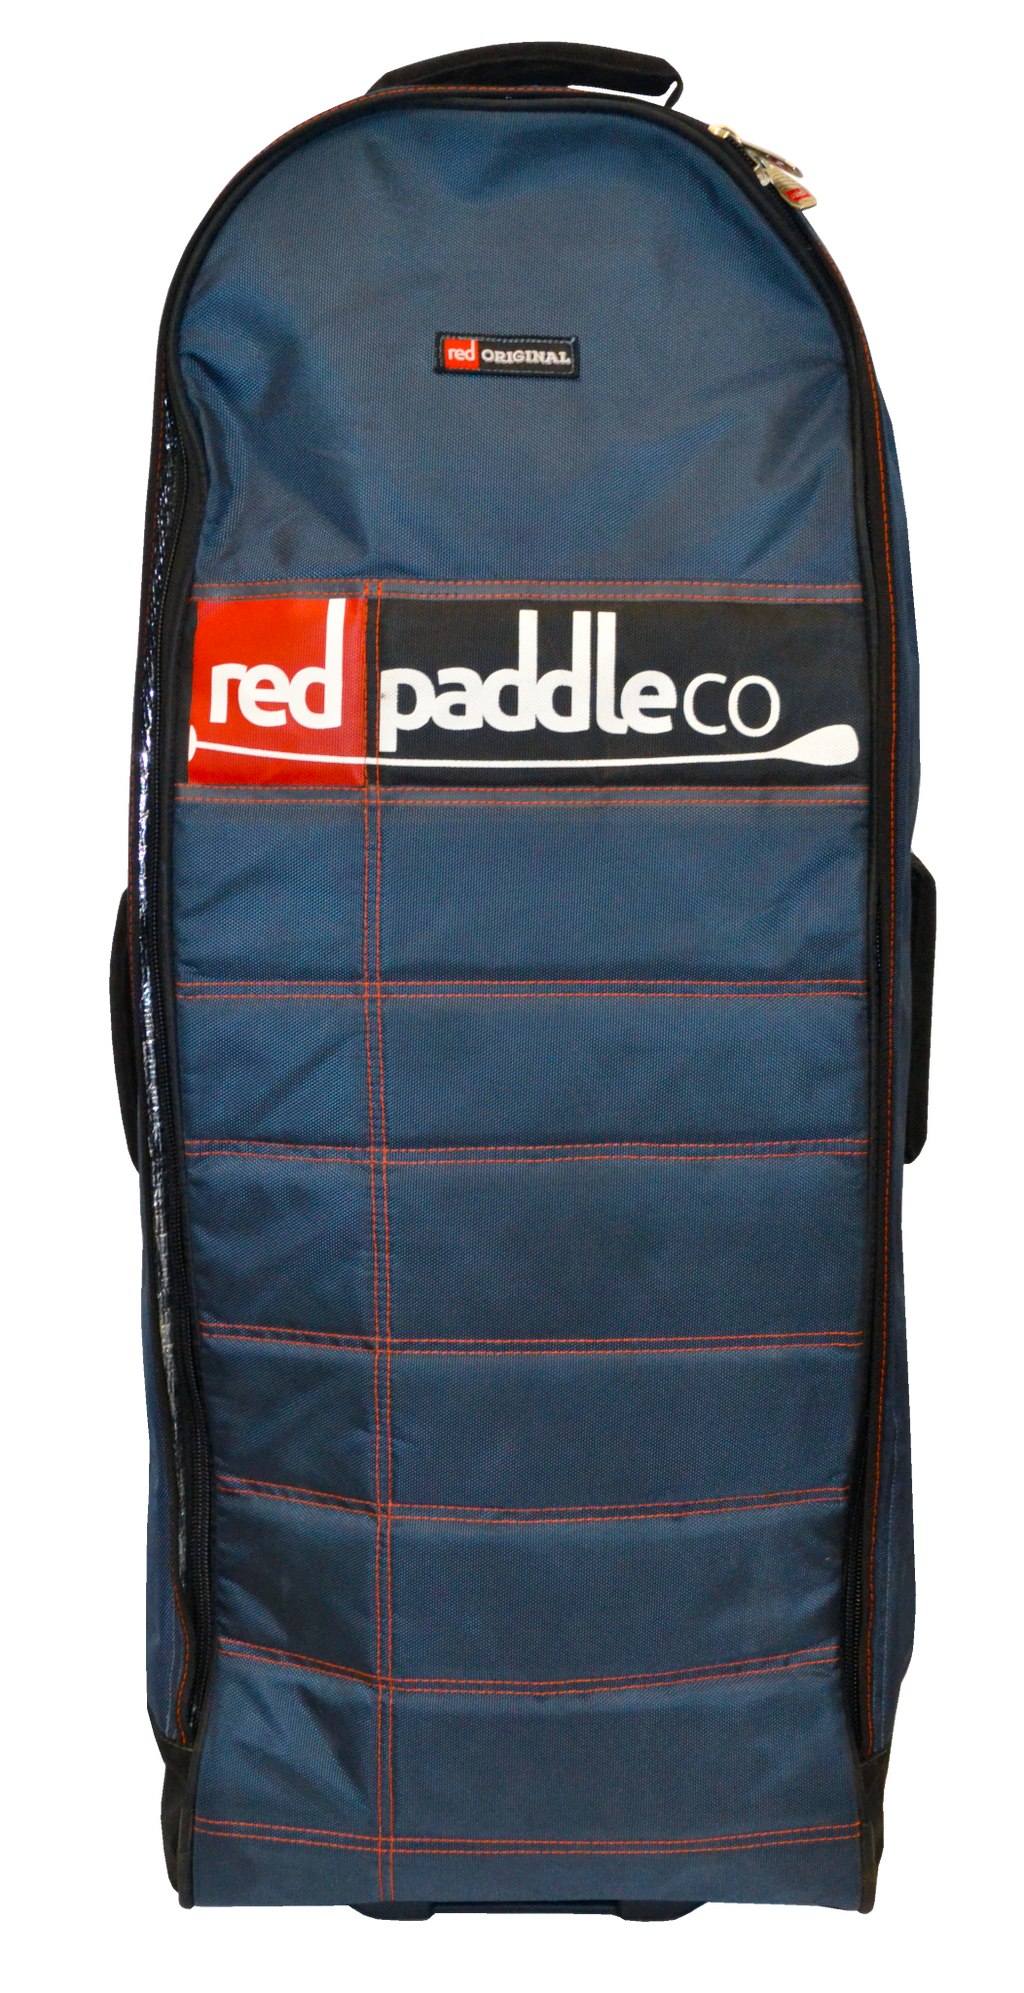 2018 Red Paddle Co All Terrain Board Backpack